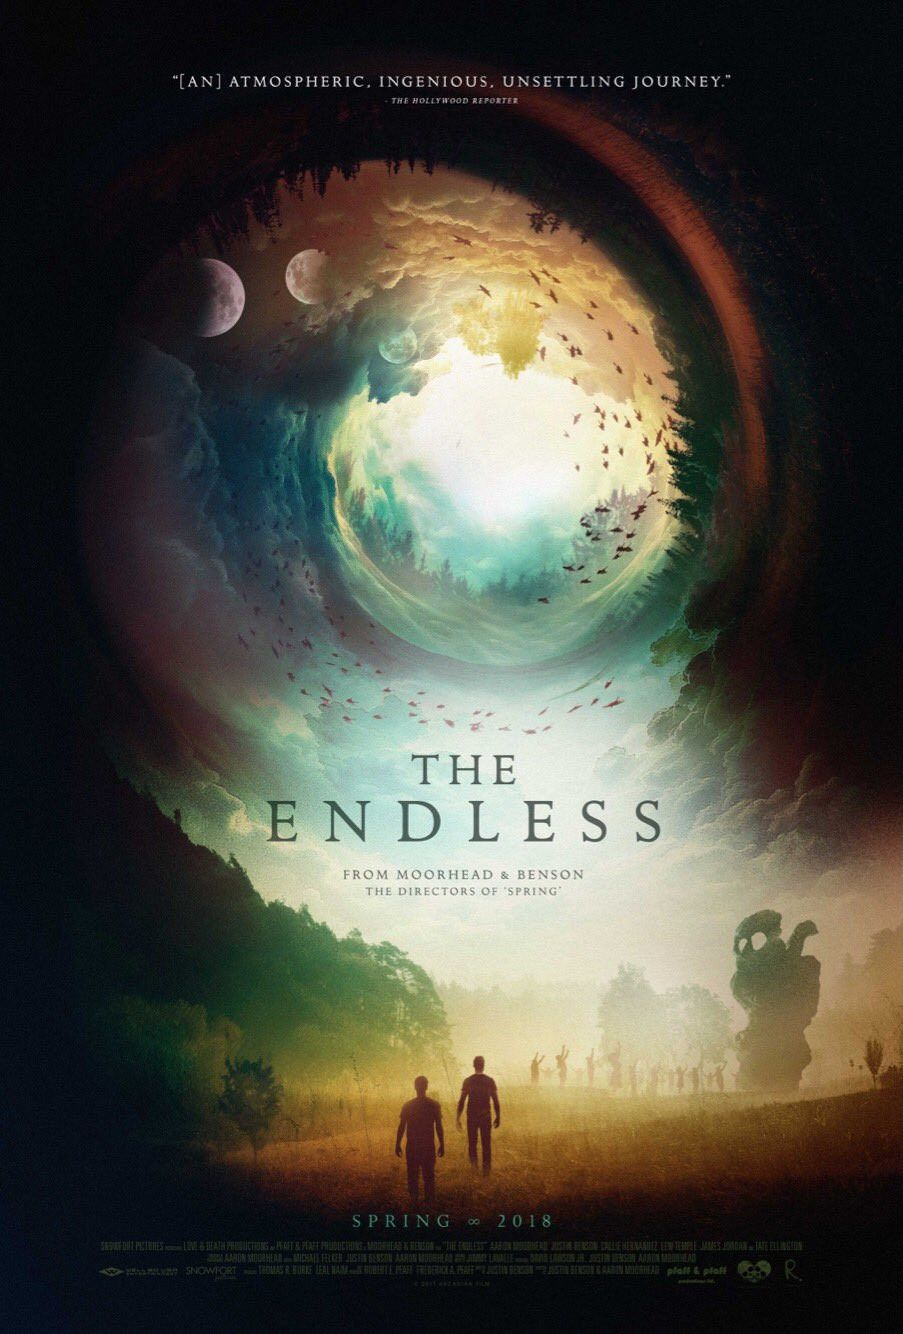 The Endless - scifi film poster 2018 fantascienza